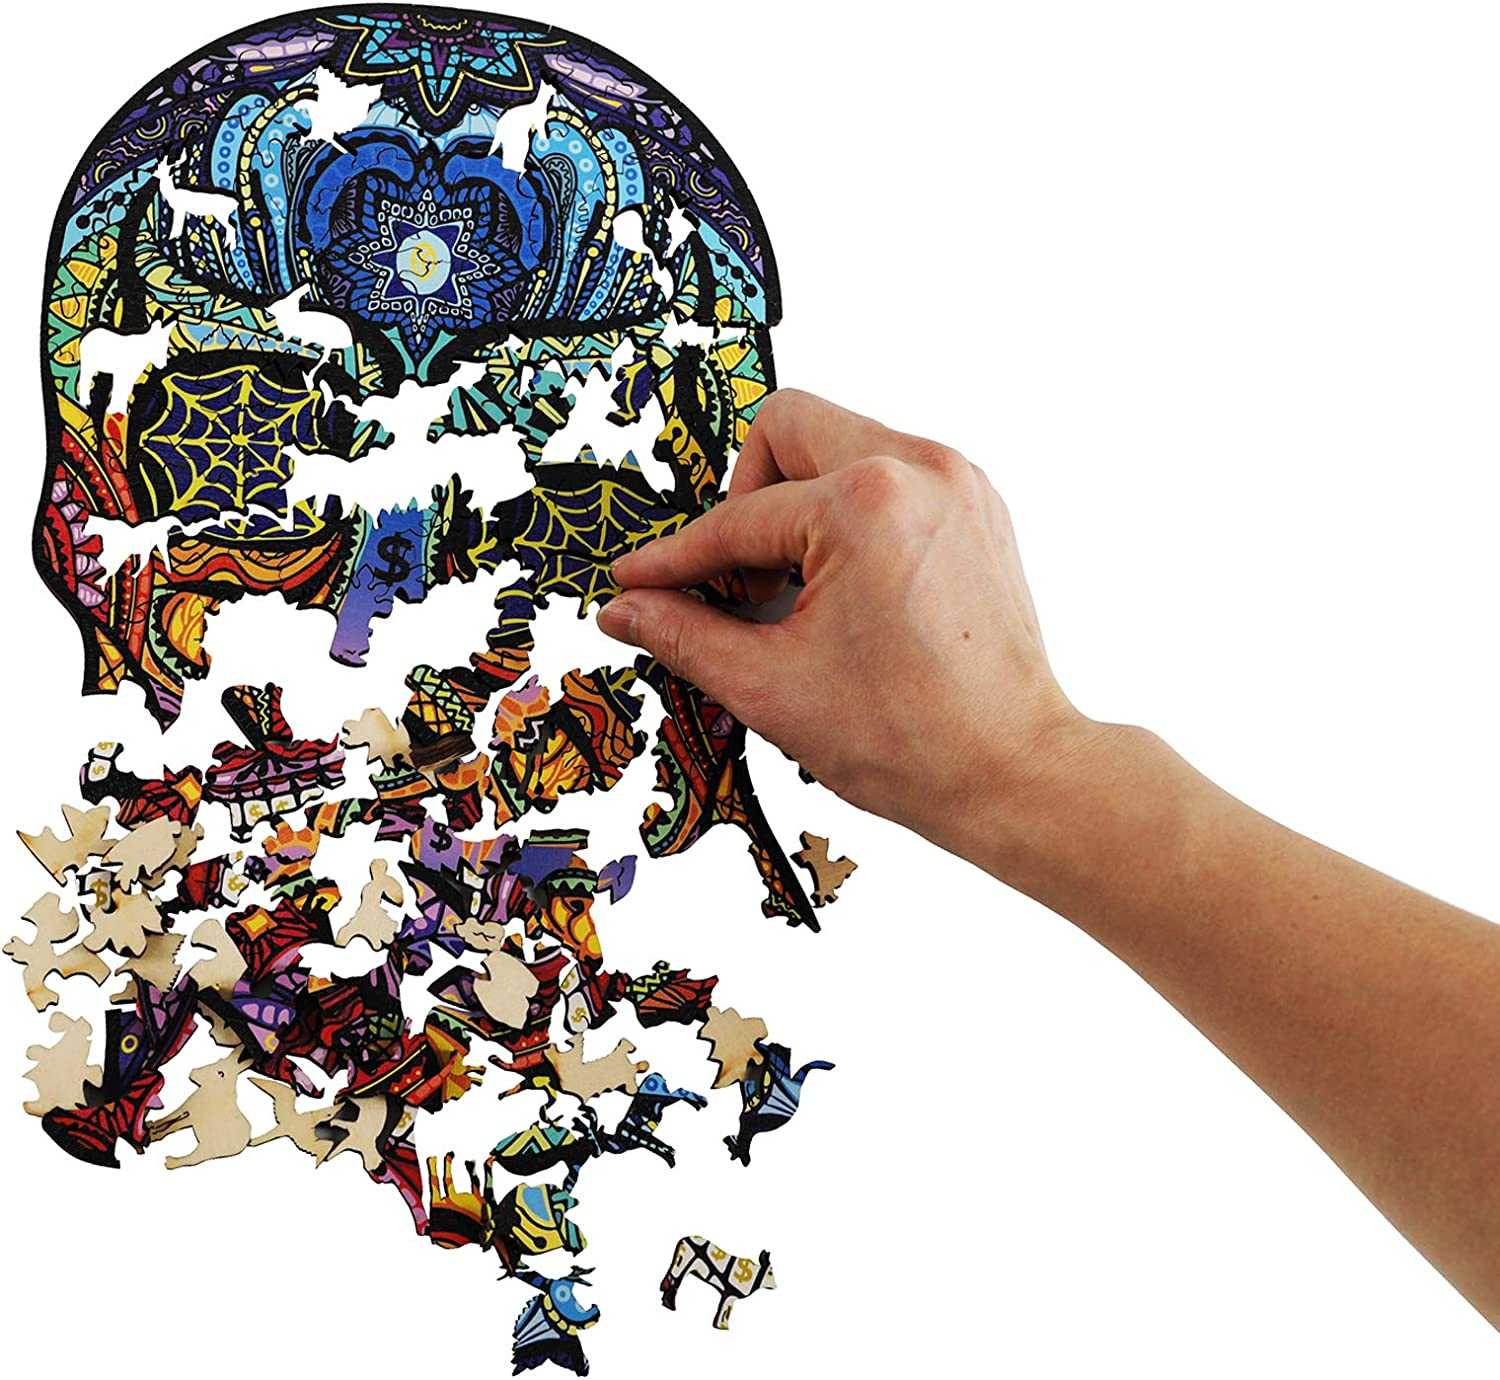 Ymlike Skull Jigsaw Puzzles Gifts for Adults Kids Skull 180 Pieces 11.4 /× 7.8 in M Wooden Animal Shaped Family Game Puzzles Ymlike Wooden Puzzles for Adults